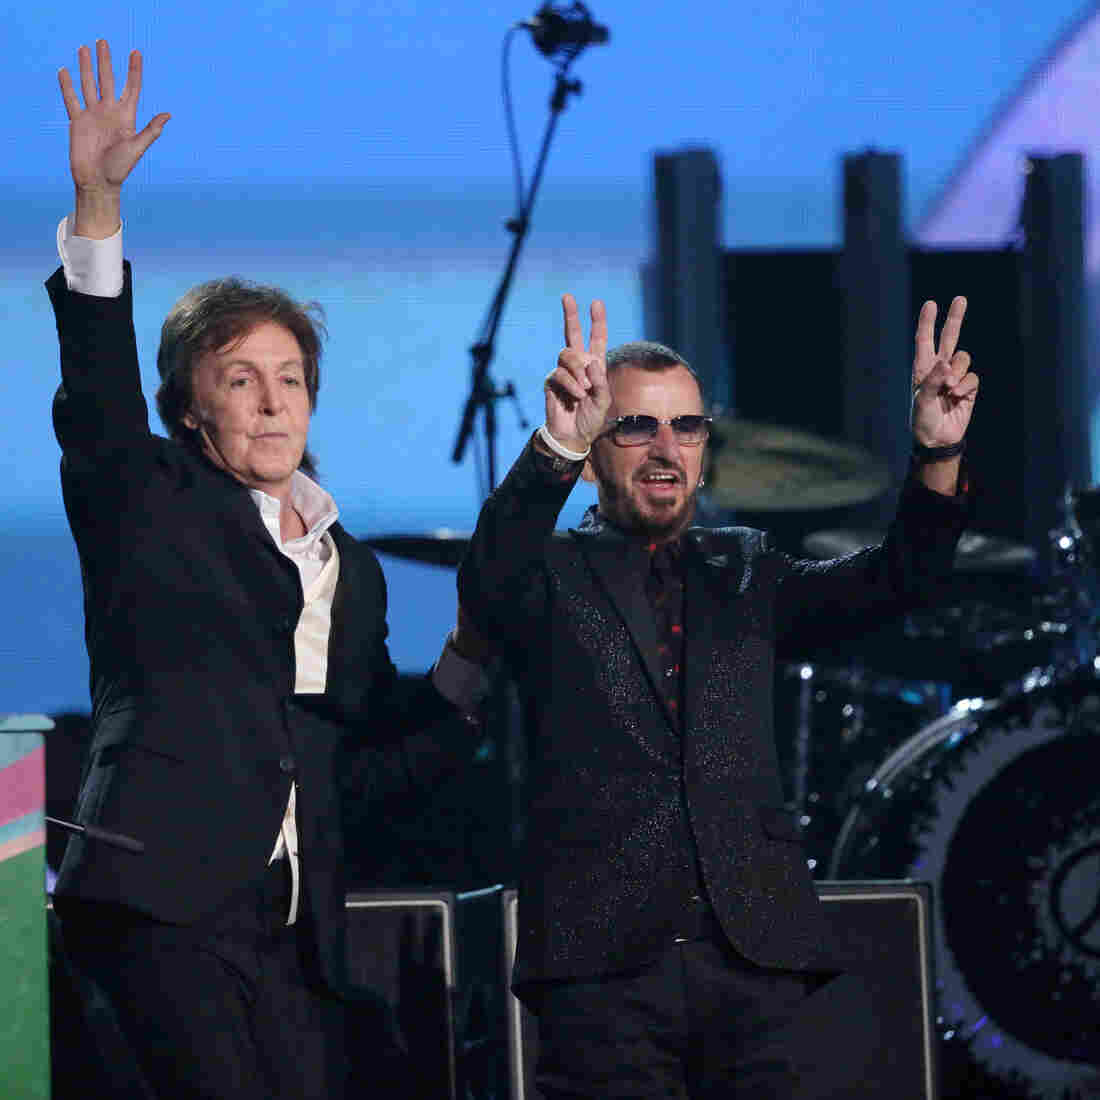 Paul McCartney, left, and Ringo Starr on stage Sunday at the 56th annual Grammy Awards in Los Angeles.